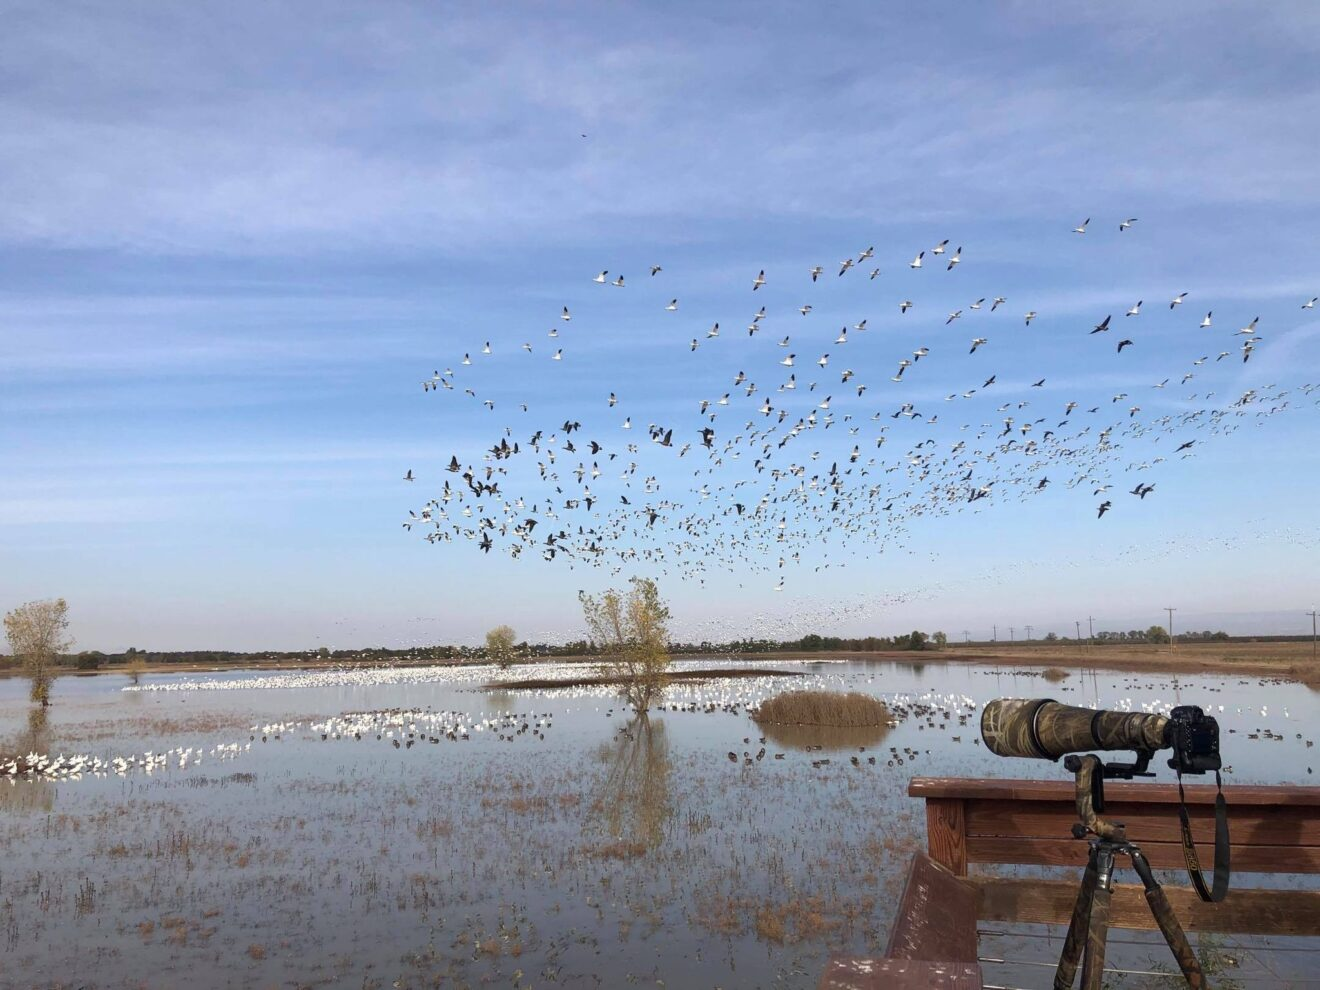 Exploring Butte County with California Watchable Wildlife